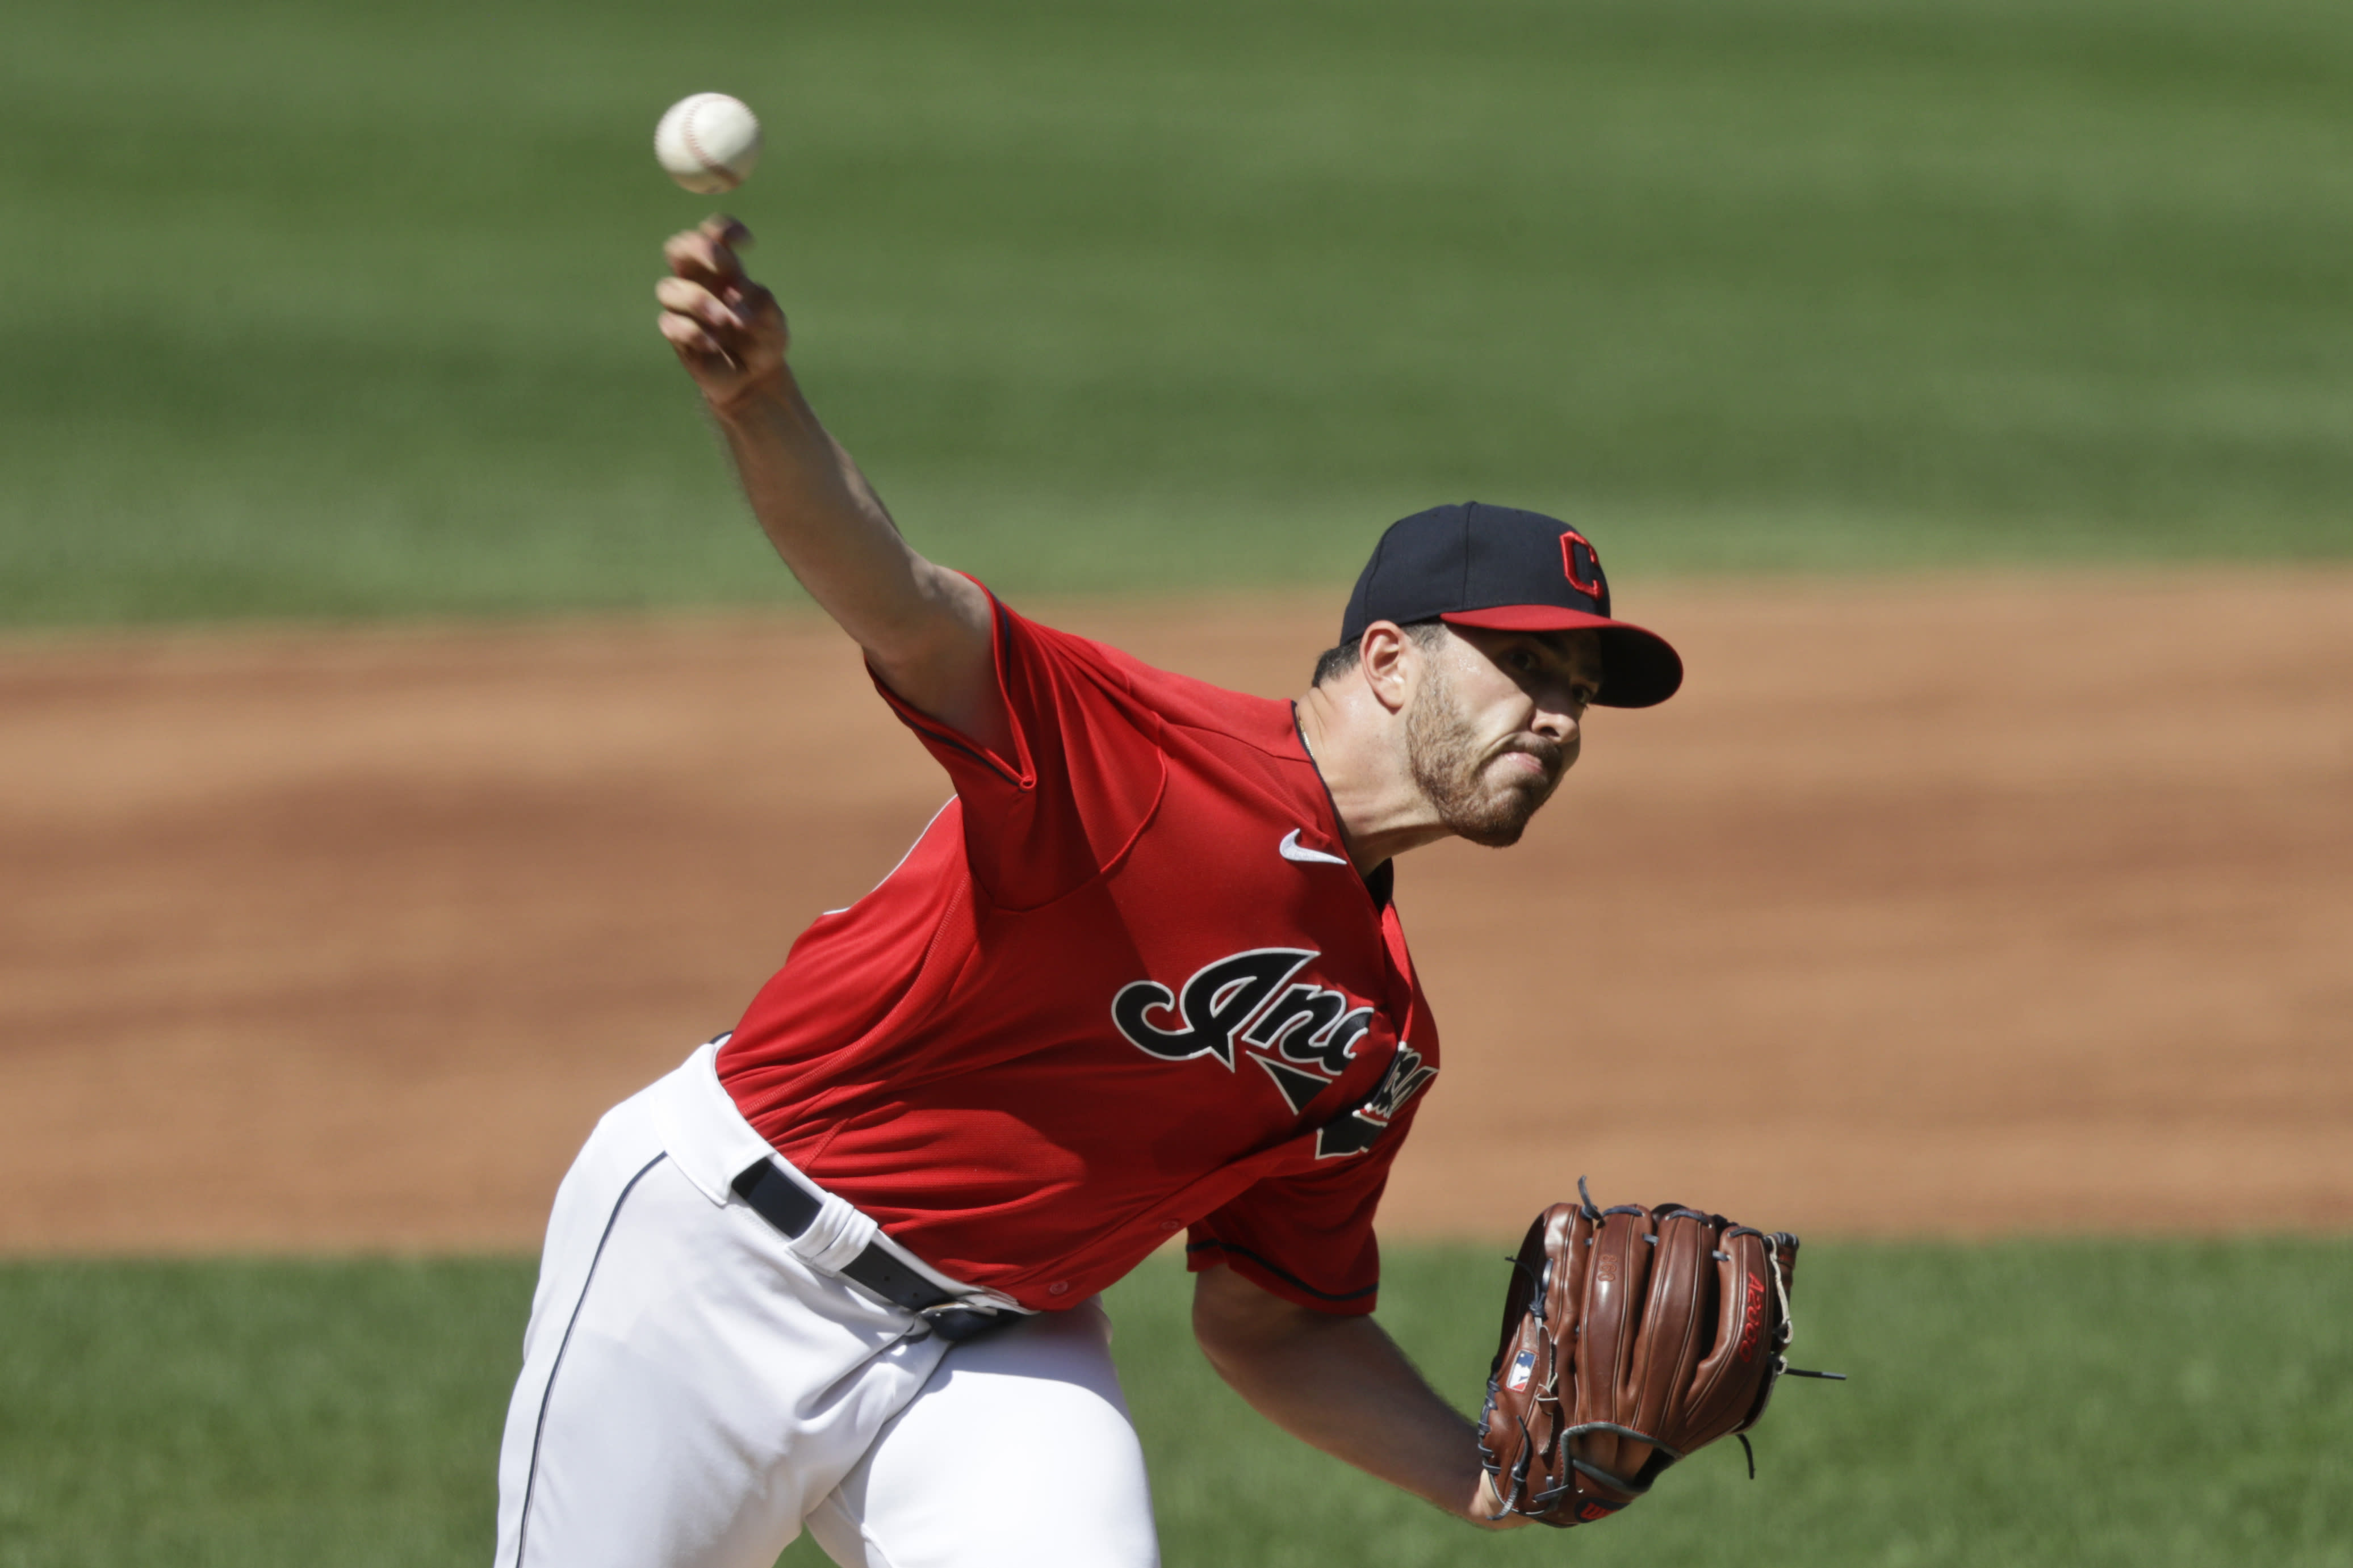 Cleveland Indians pitcher Aaron Civale delivers in the first inning in the first baseball game of a doubleheader against the Chicago White Sox, Tuesday, July 28, 2020, in Cleveland. (AP Photo/Tony Dejak)